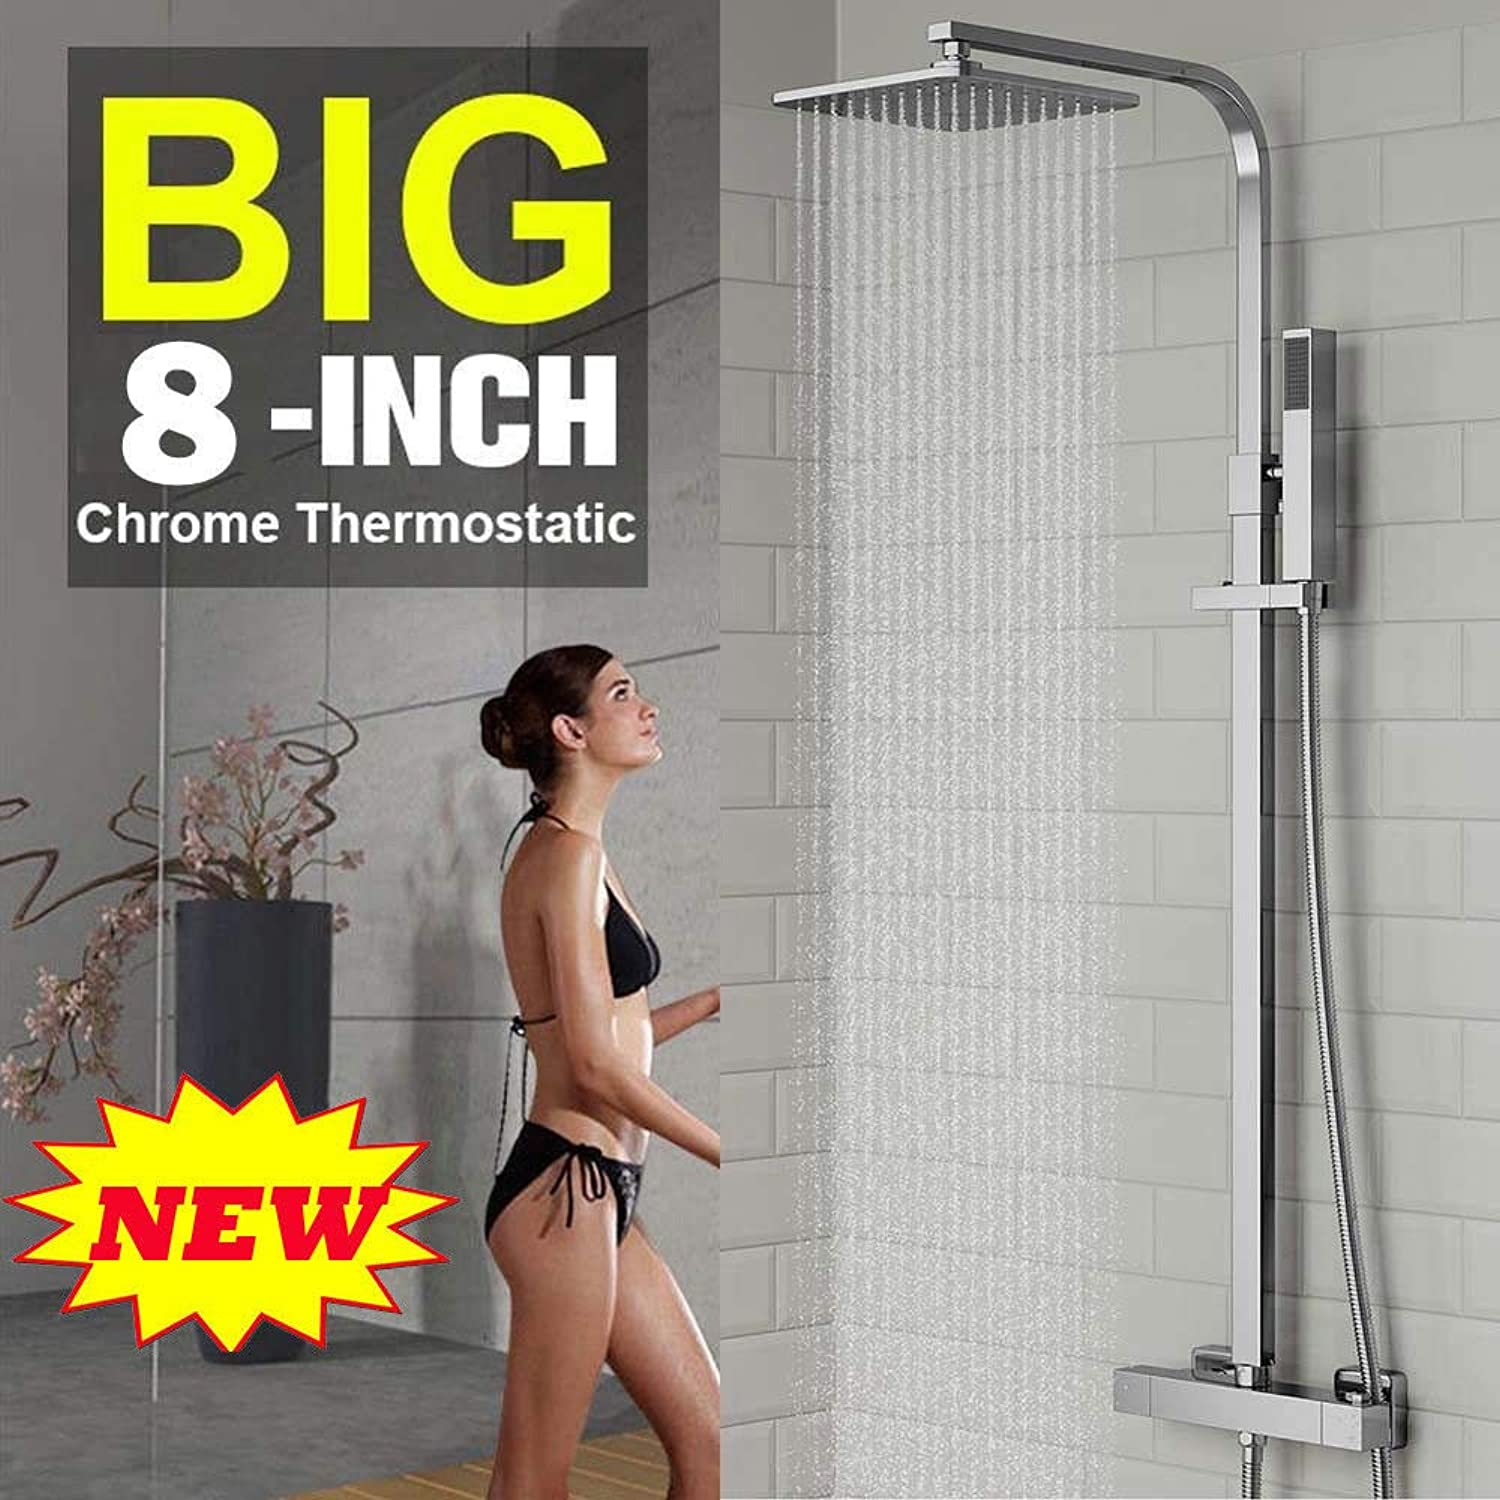 Bathroom Exposed Thermostatic 2-Way Outlet Bar Mixer Shower Set System Overhead Chrome Valve Twin Head Valve Set-Rain Fall Shower Square Head + Handheld- Easy to Install